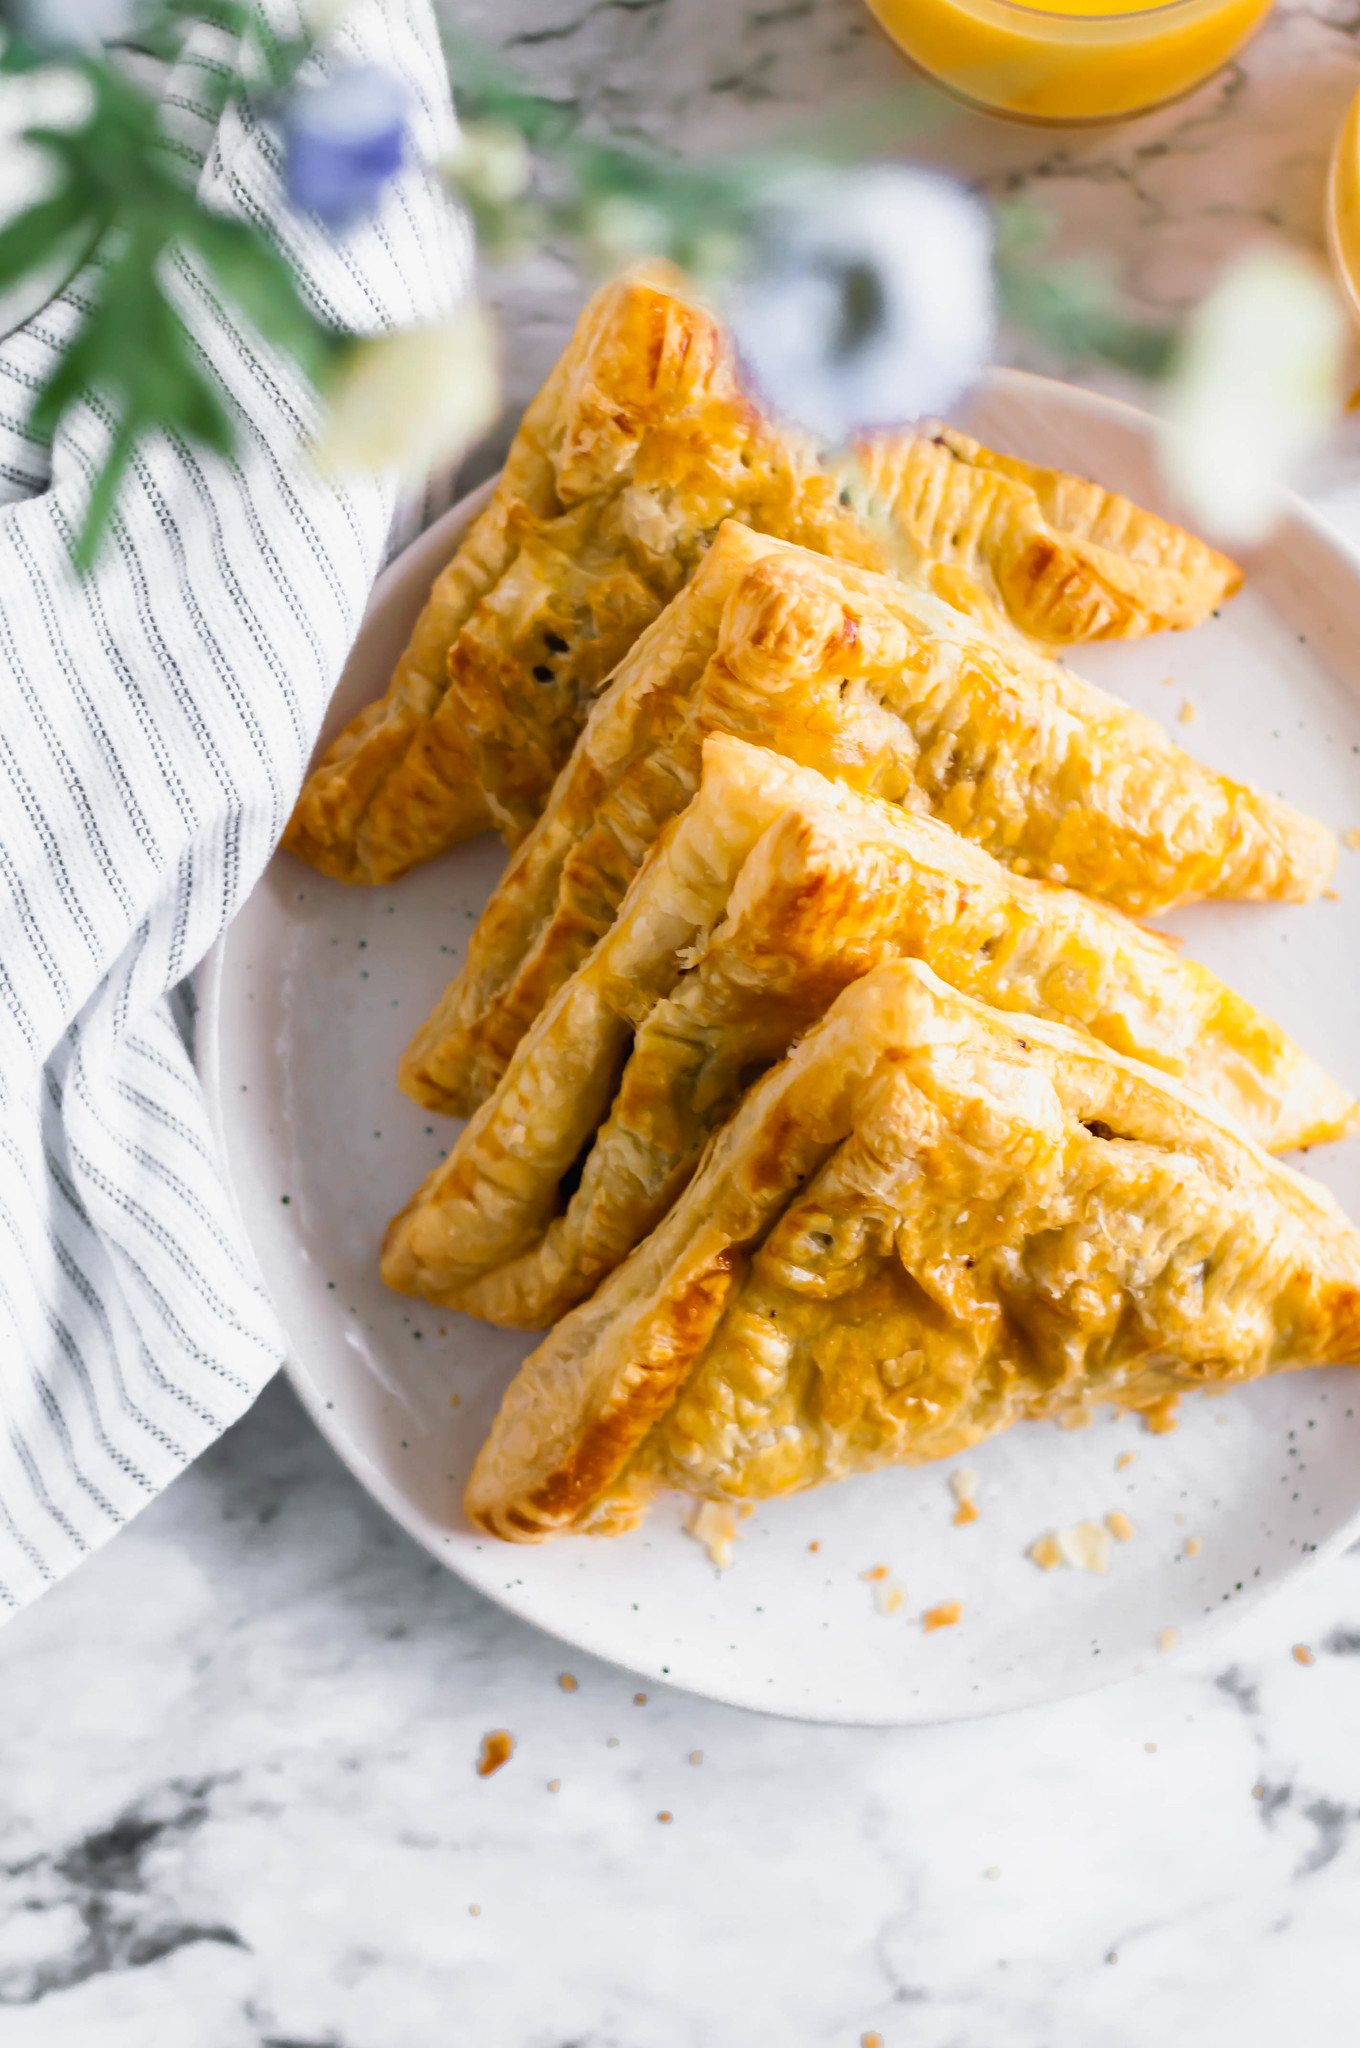 These Savory Turnovers are going to turn into your favorite brunch item. Flaky puff pastry filled with tender scrambled eggs, breakfast sausage and shredded sharp cheddar.